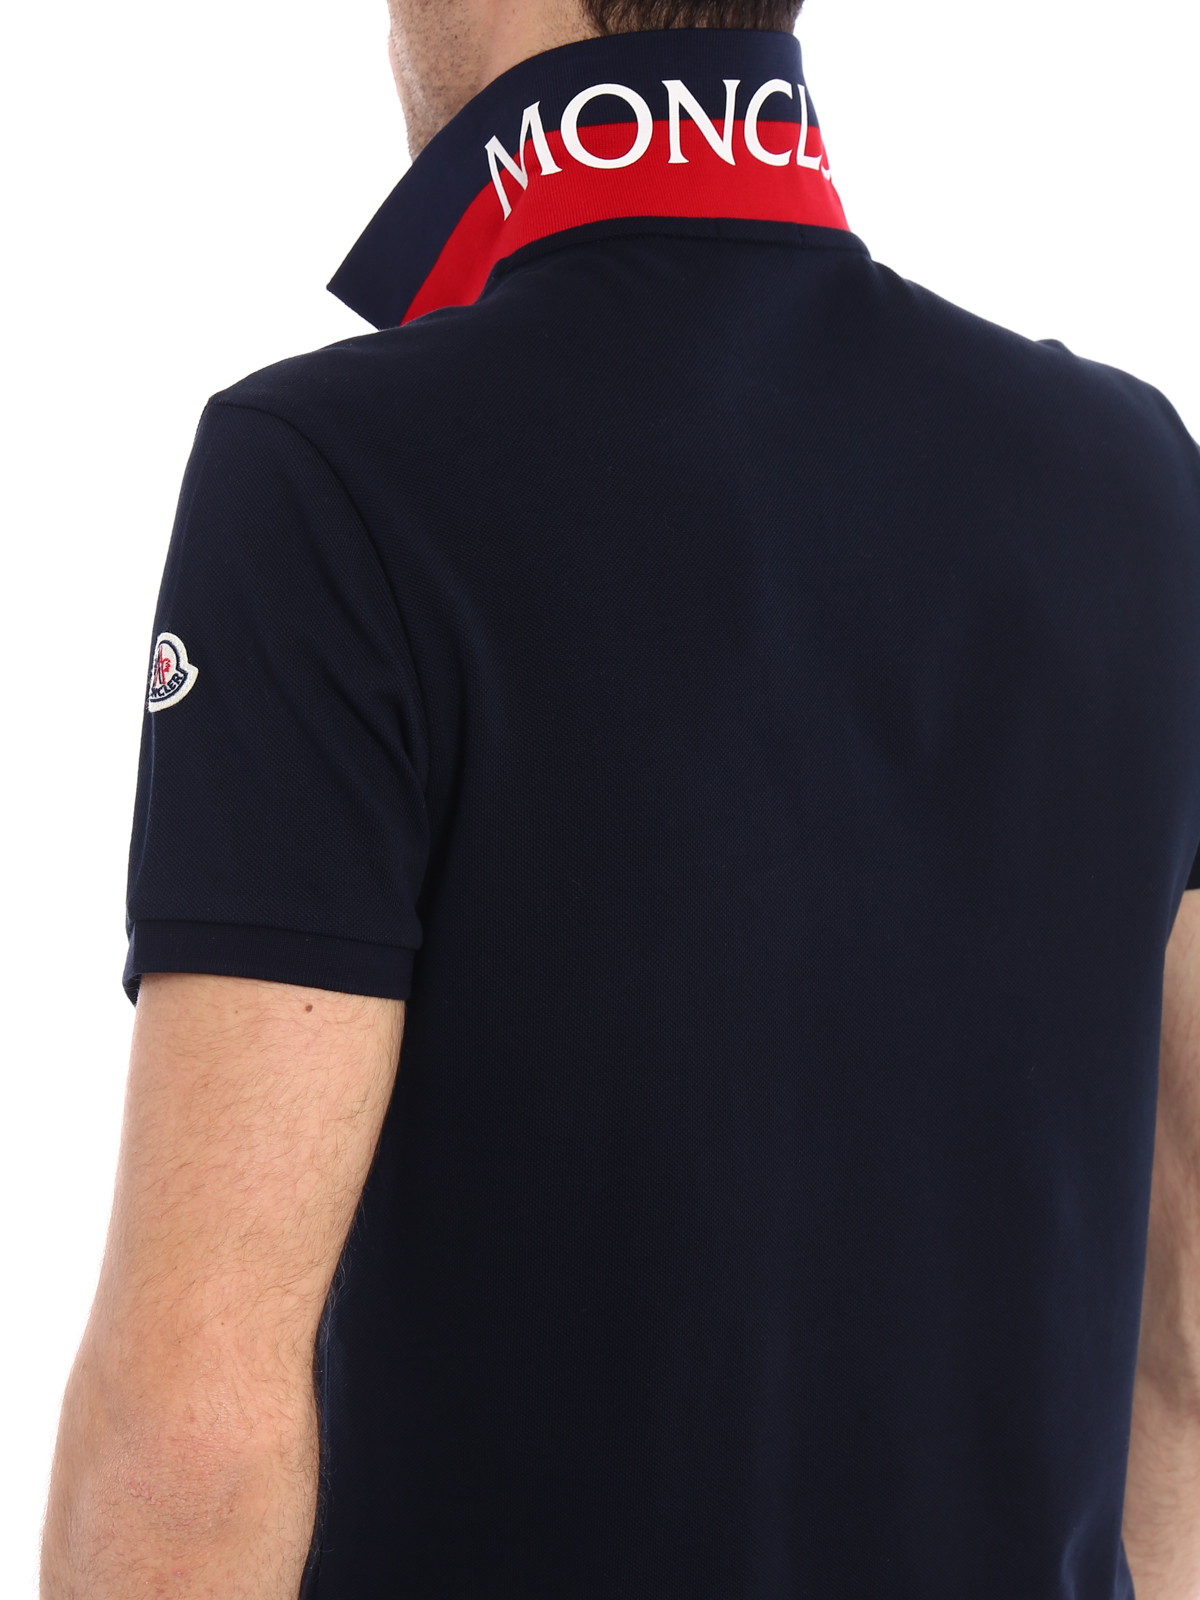 moncler polo dark blue